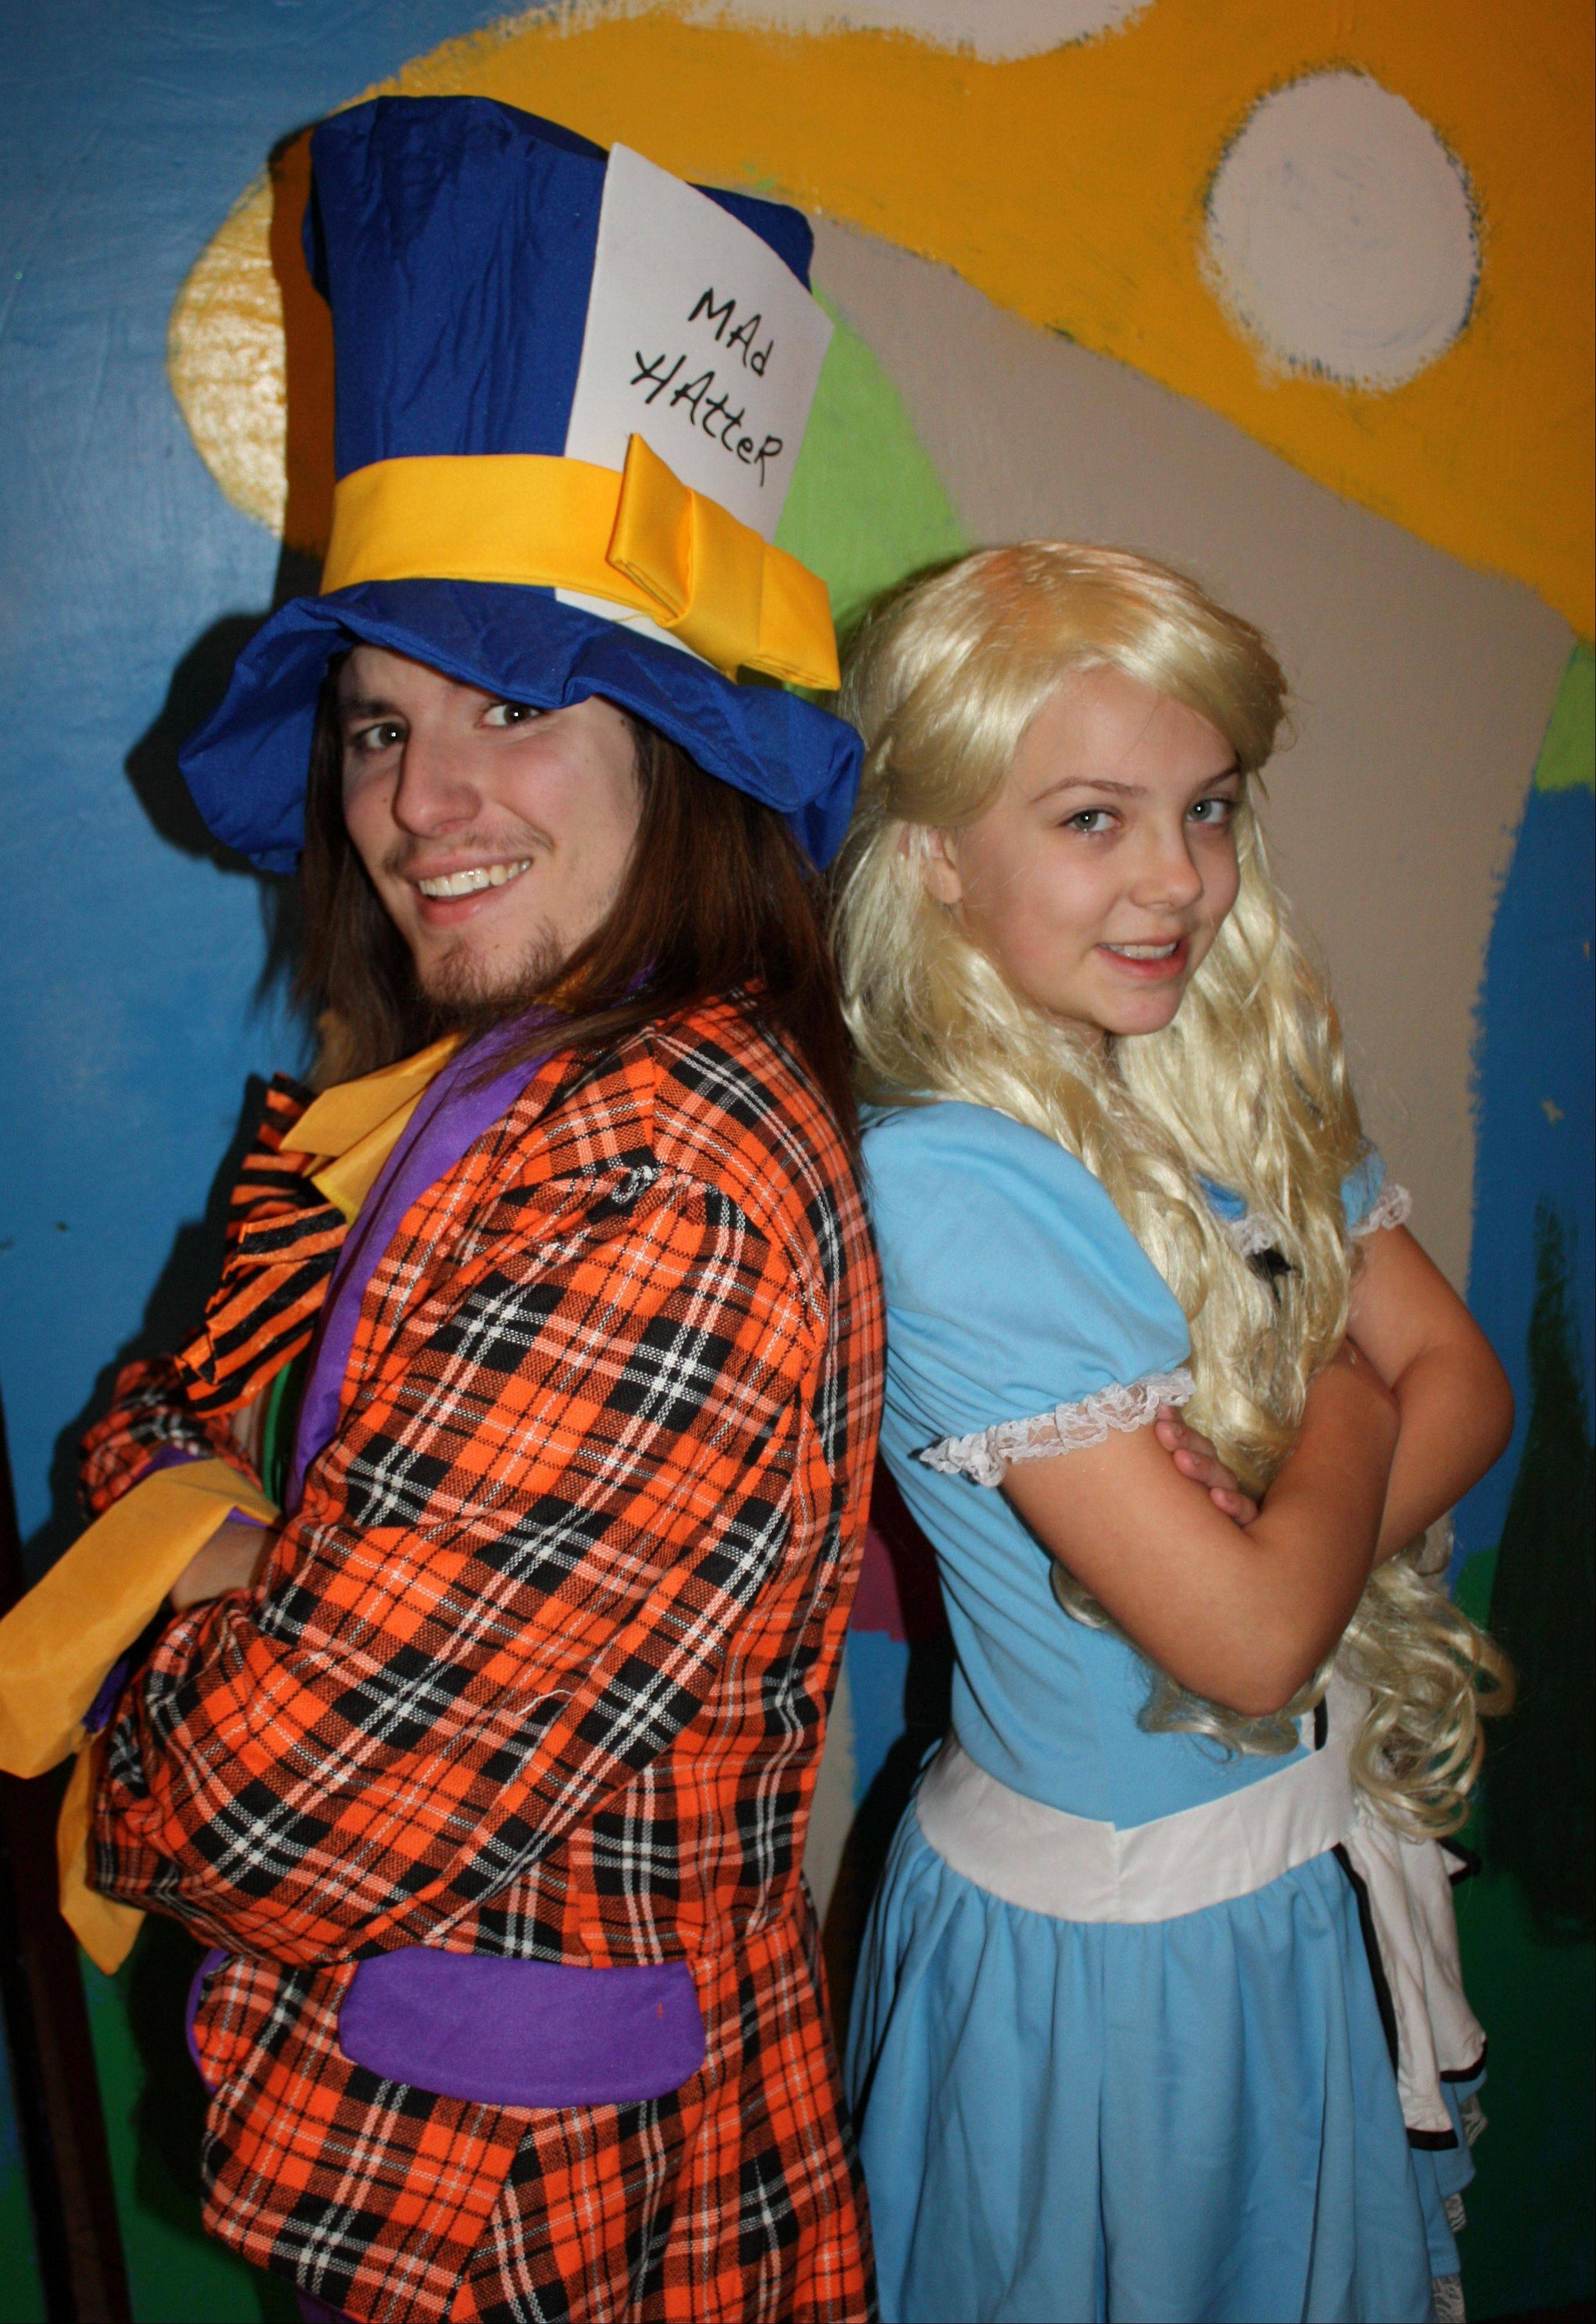 Matt Goodmanson of Arlington Heights as the Mad Hatter and Jodie Lloyd of Itasca as Alice.